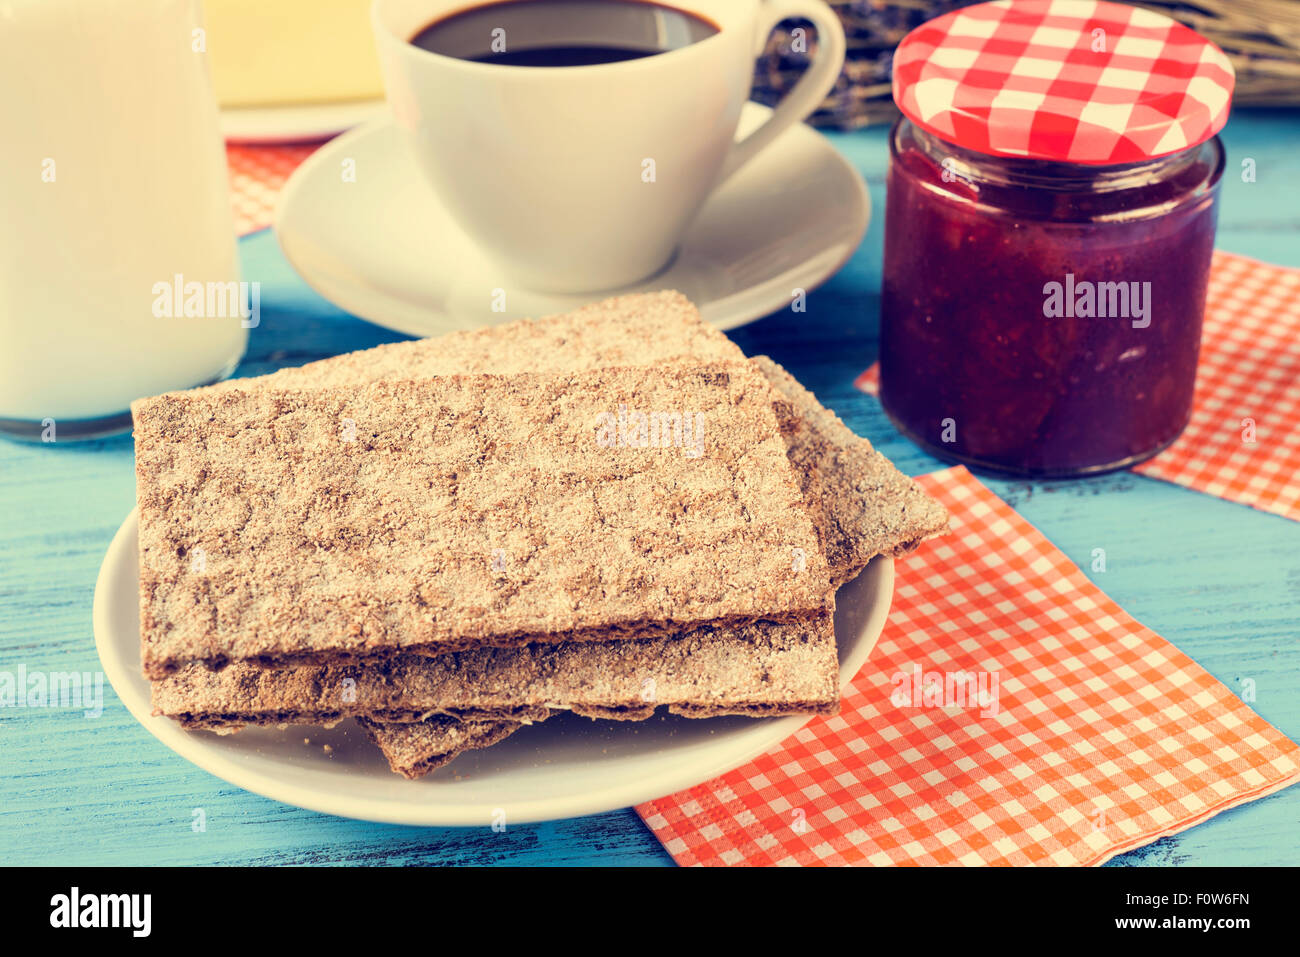 closeup of crispbread in a plate, a cup of coffee, a bottle with milk and a jar of jam on a rustic blue wooden table, - Stock Image